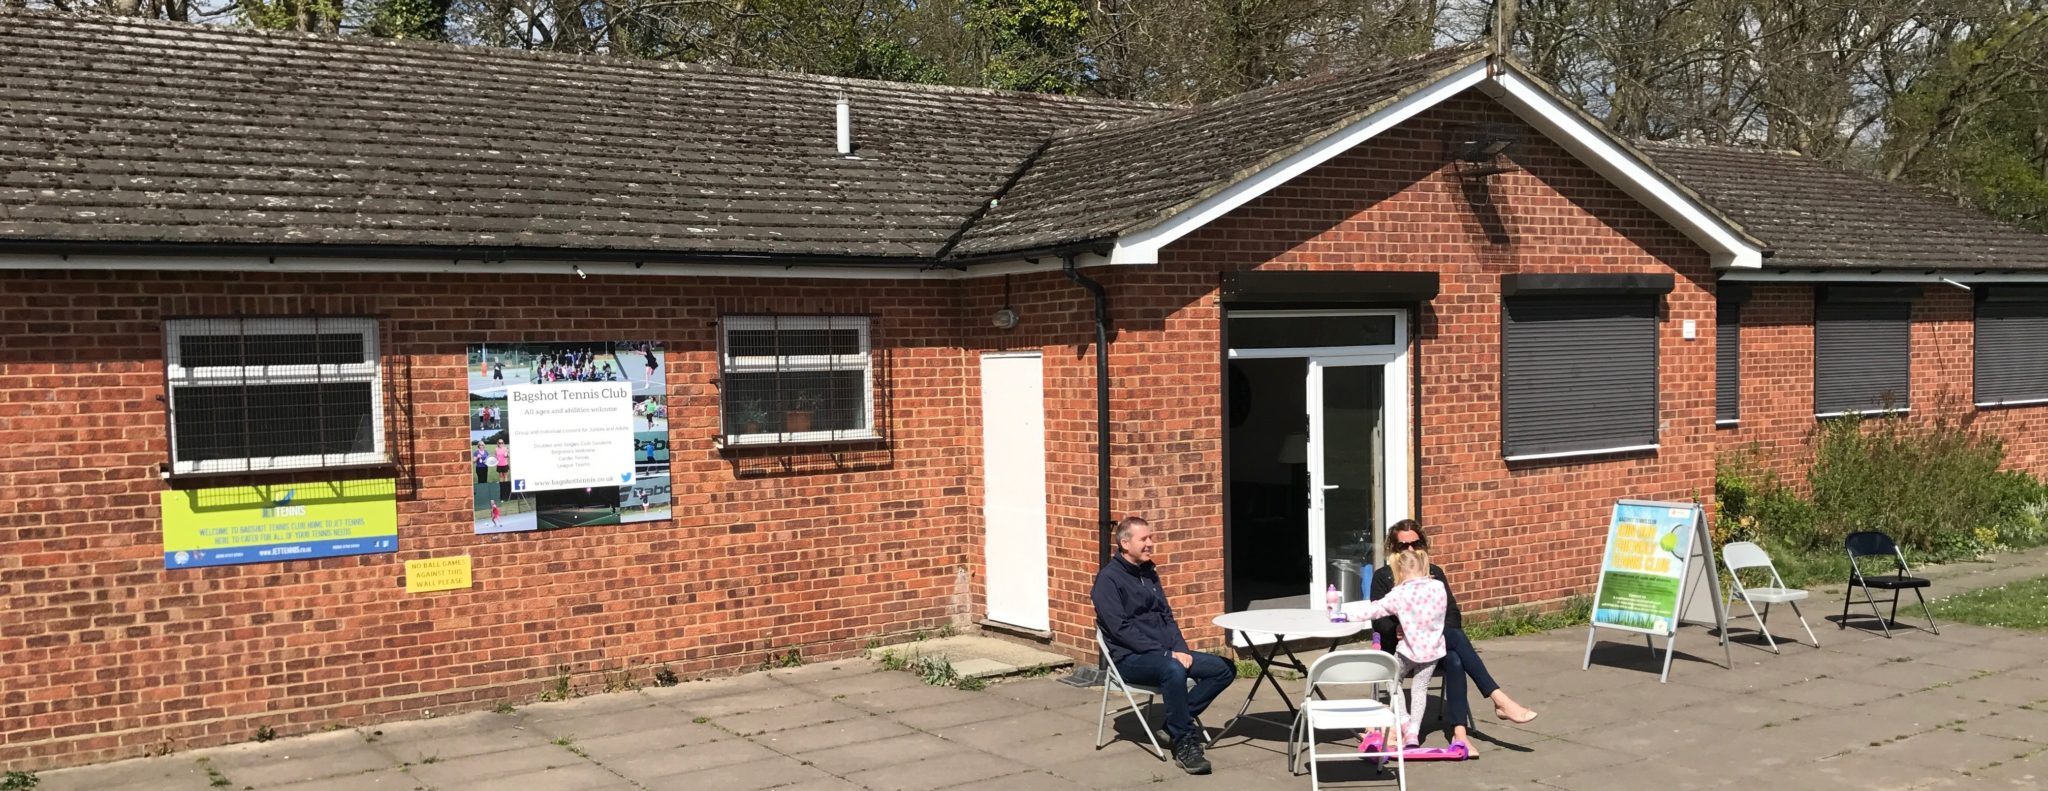 Outside space at Bagshot playing fields